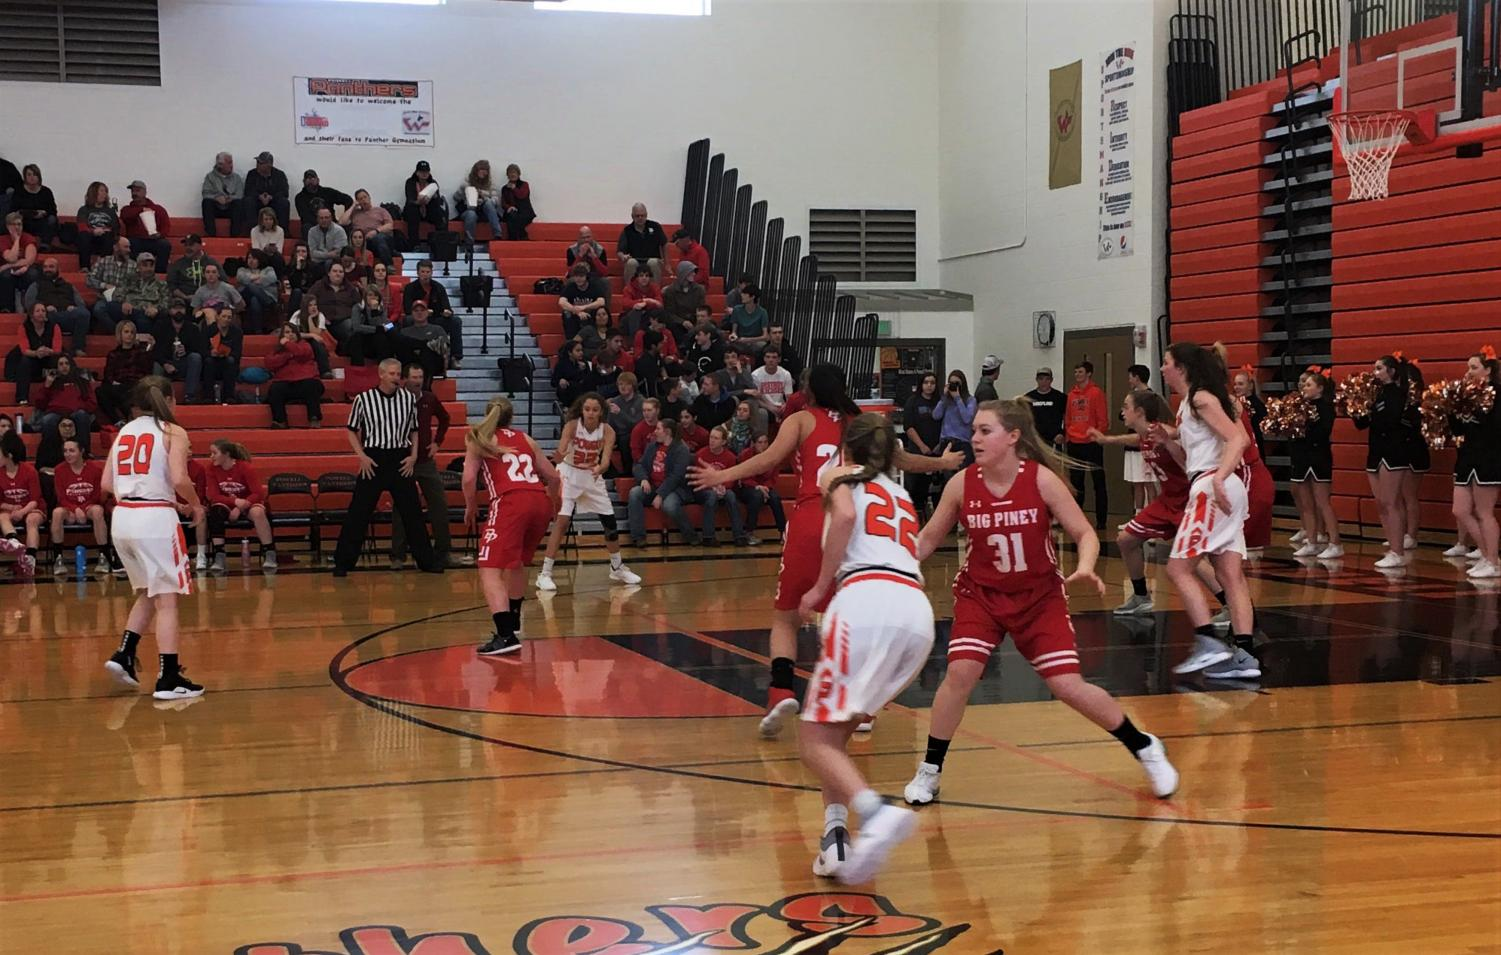 The Powell Lady Panther basketball team runs through a play against the Big Piney Lady Punchers Feb. 2.